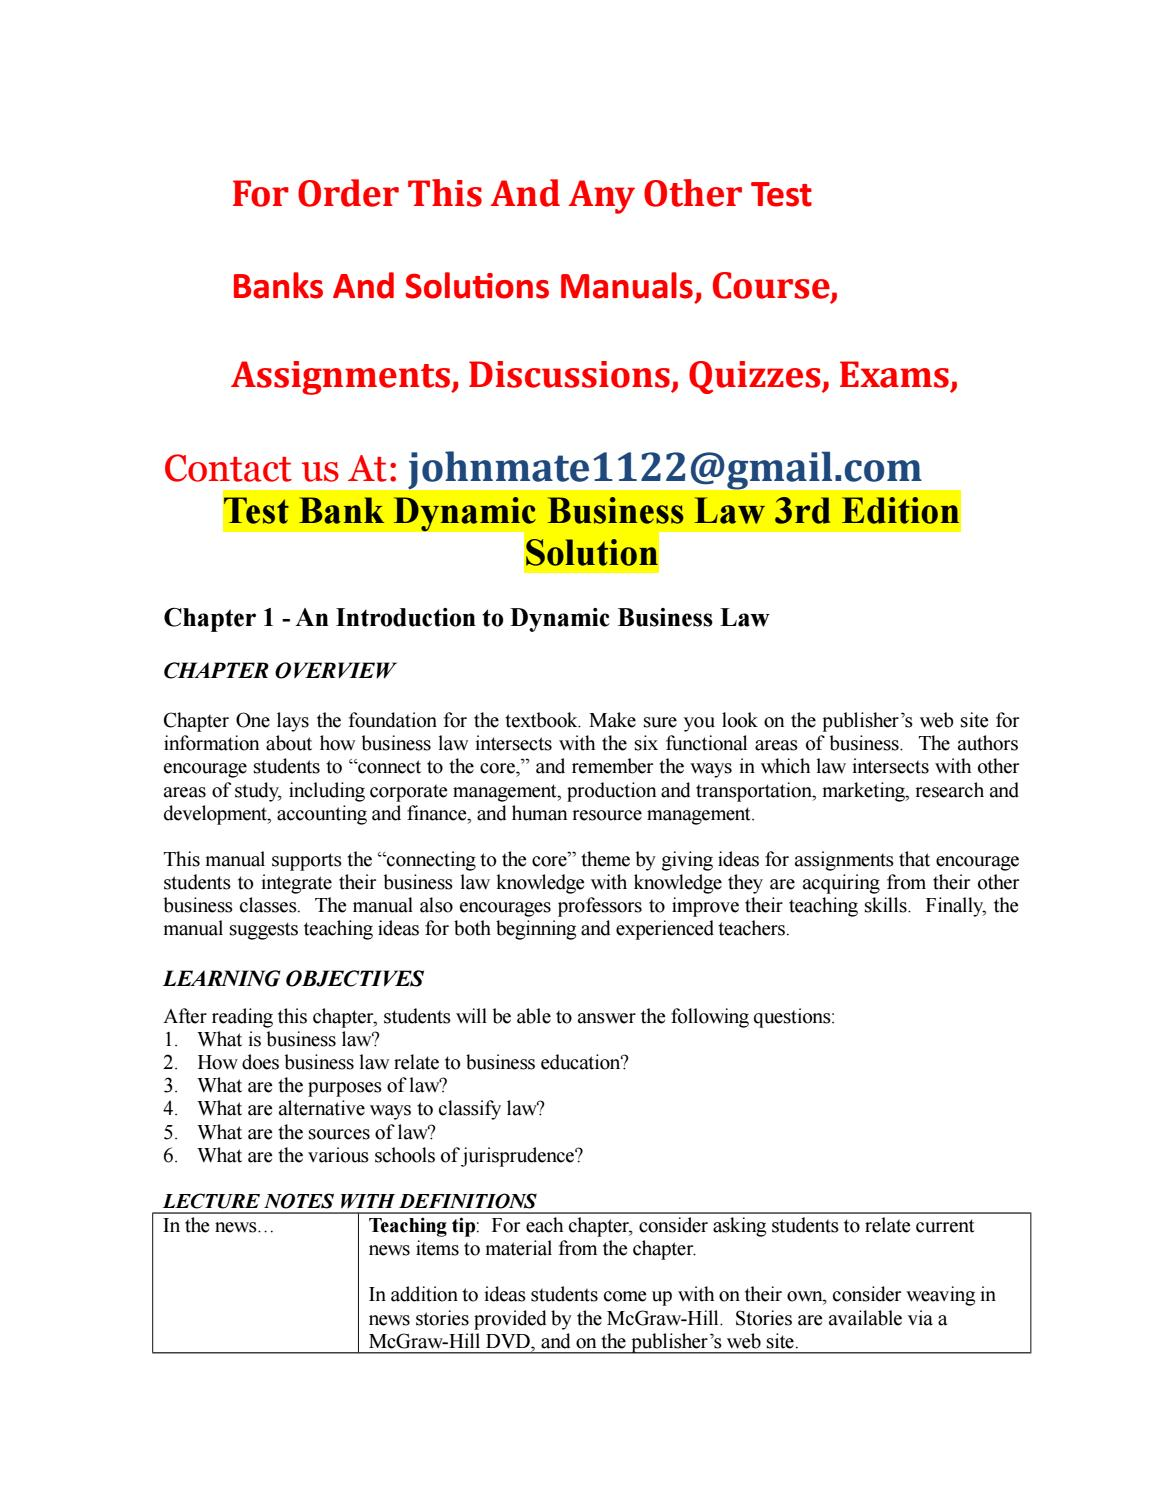 Test%20bank%20dynamic%20business%20law%203rd%20edition%20solution by